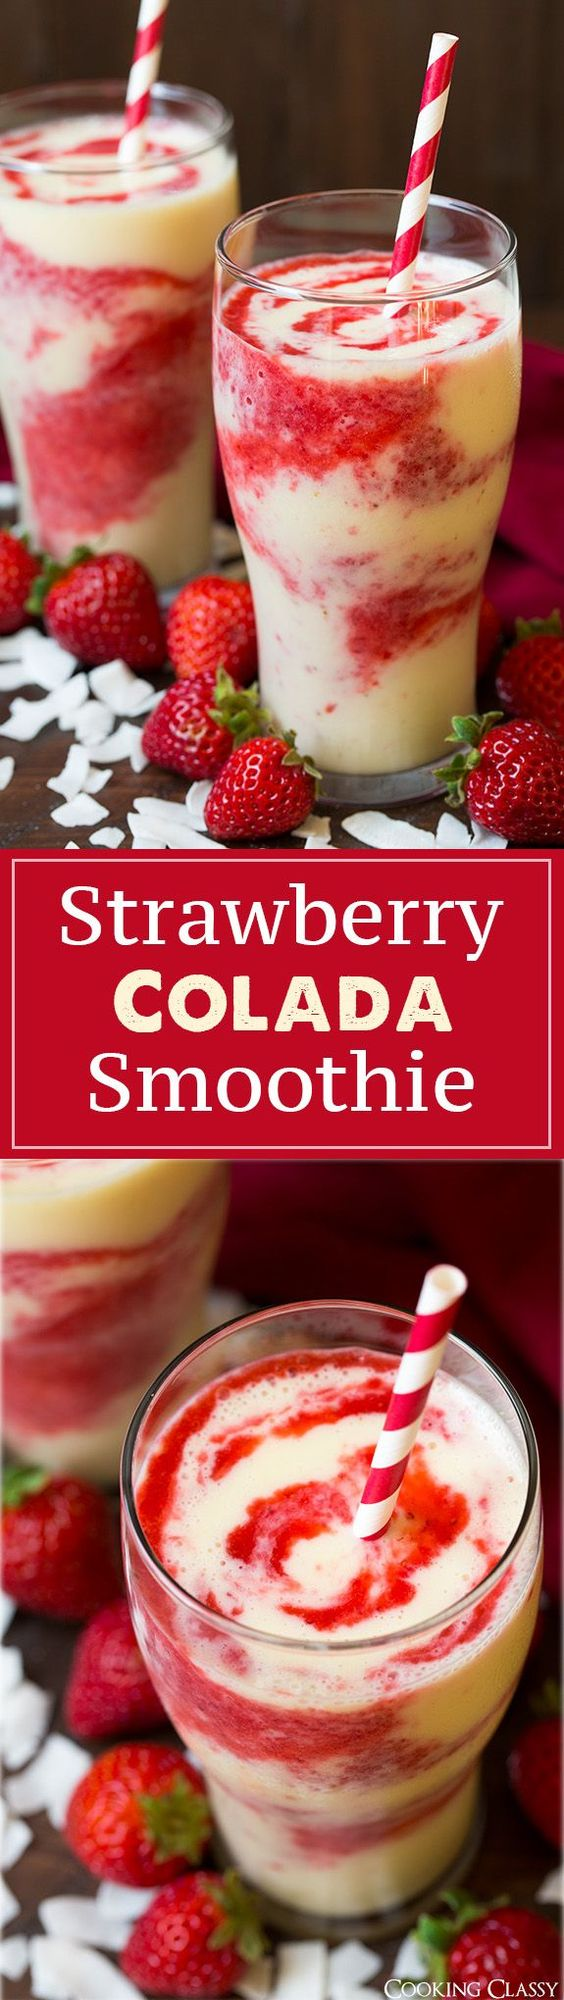 Strawberry Colada Smoothie Recipe via Cooking Classy - these are so refreshing on a hot summer day! Love the strawberry coconut flavor combo!